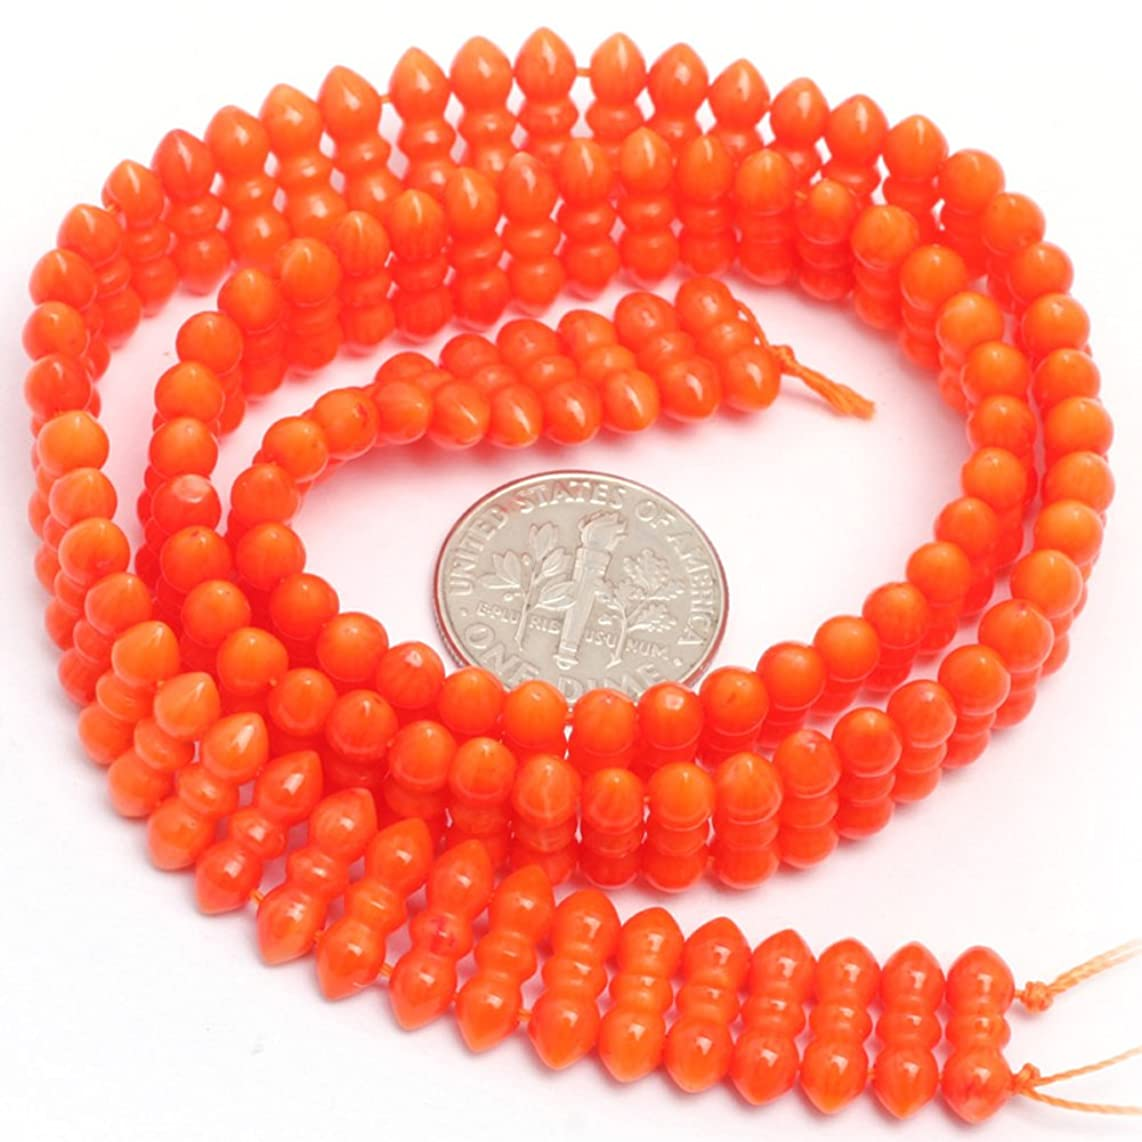 JOE FOREMAN 4x11mm Orange Coral Semi Precious Gemstone Loose Beads for Jewelry Making DIY Handmade Craft Supplies 15